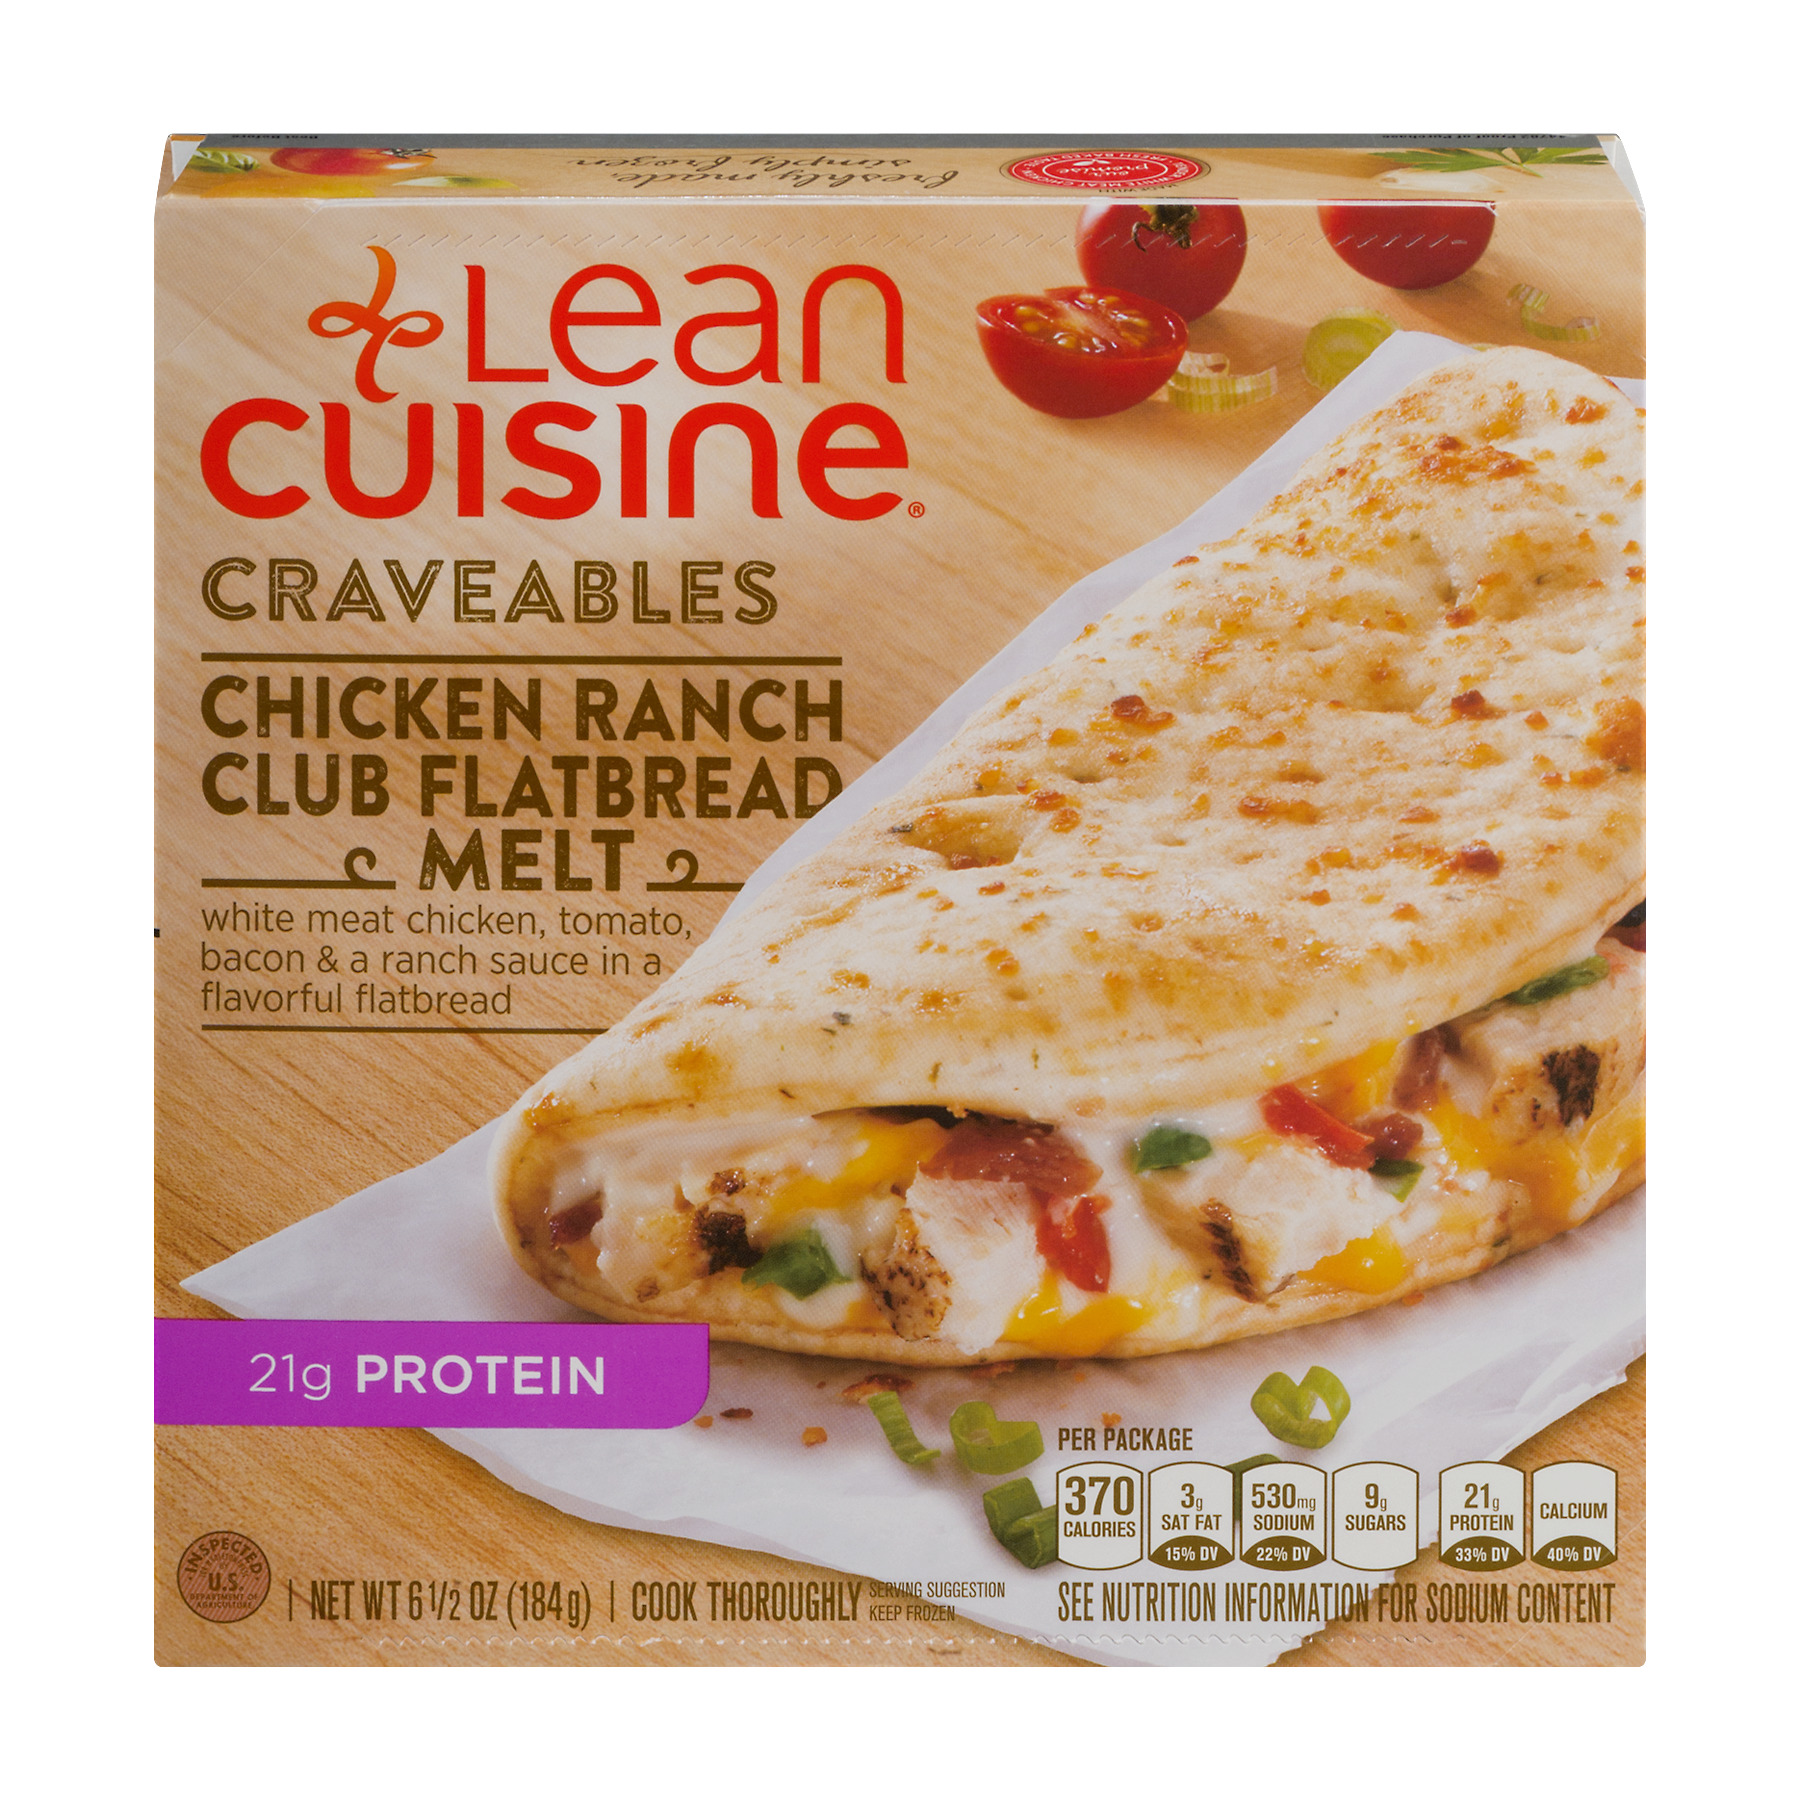 LEAN CUISINE Craveables Chicken Ranch Club Flatbread Melt 6.5 oz Box